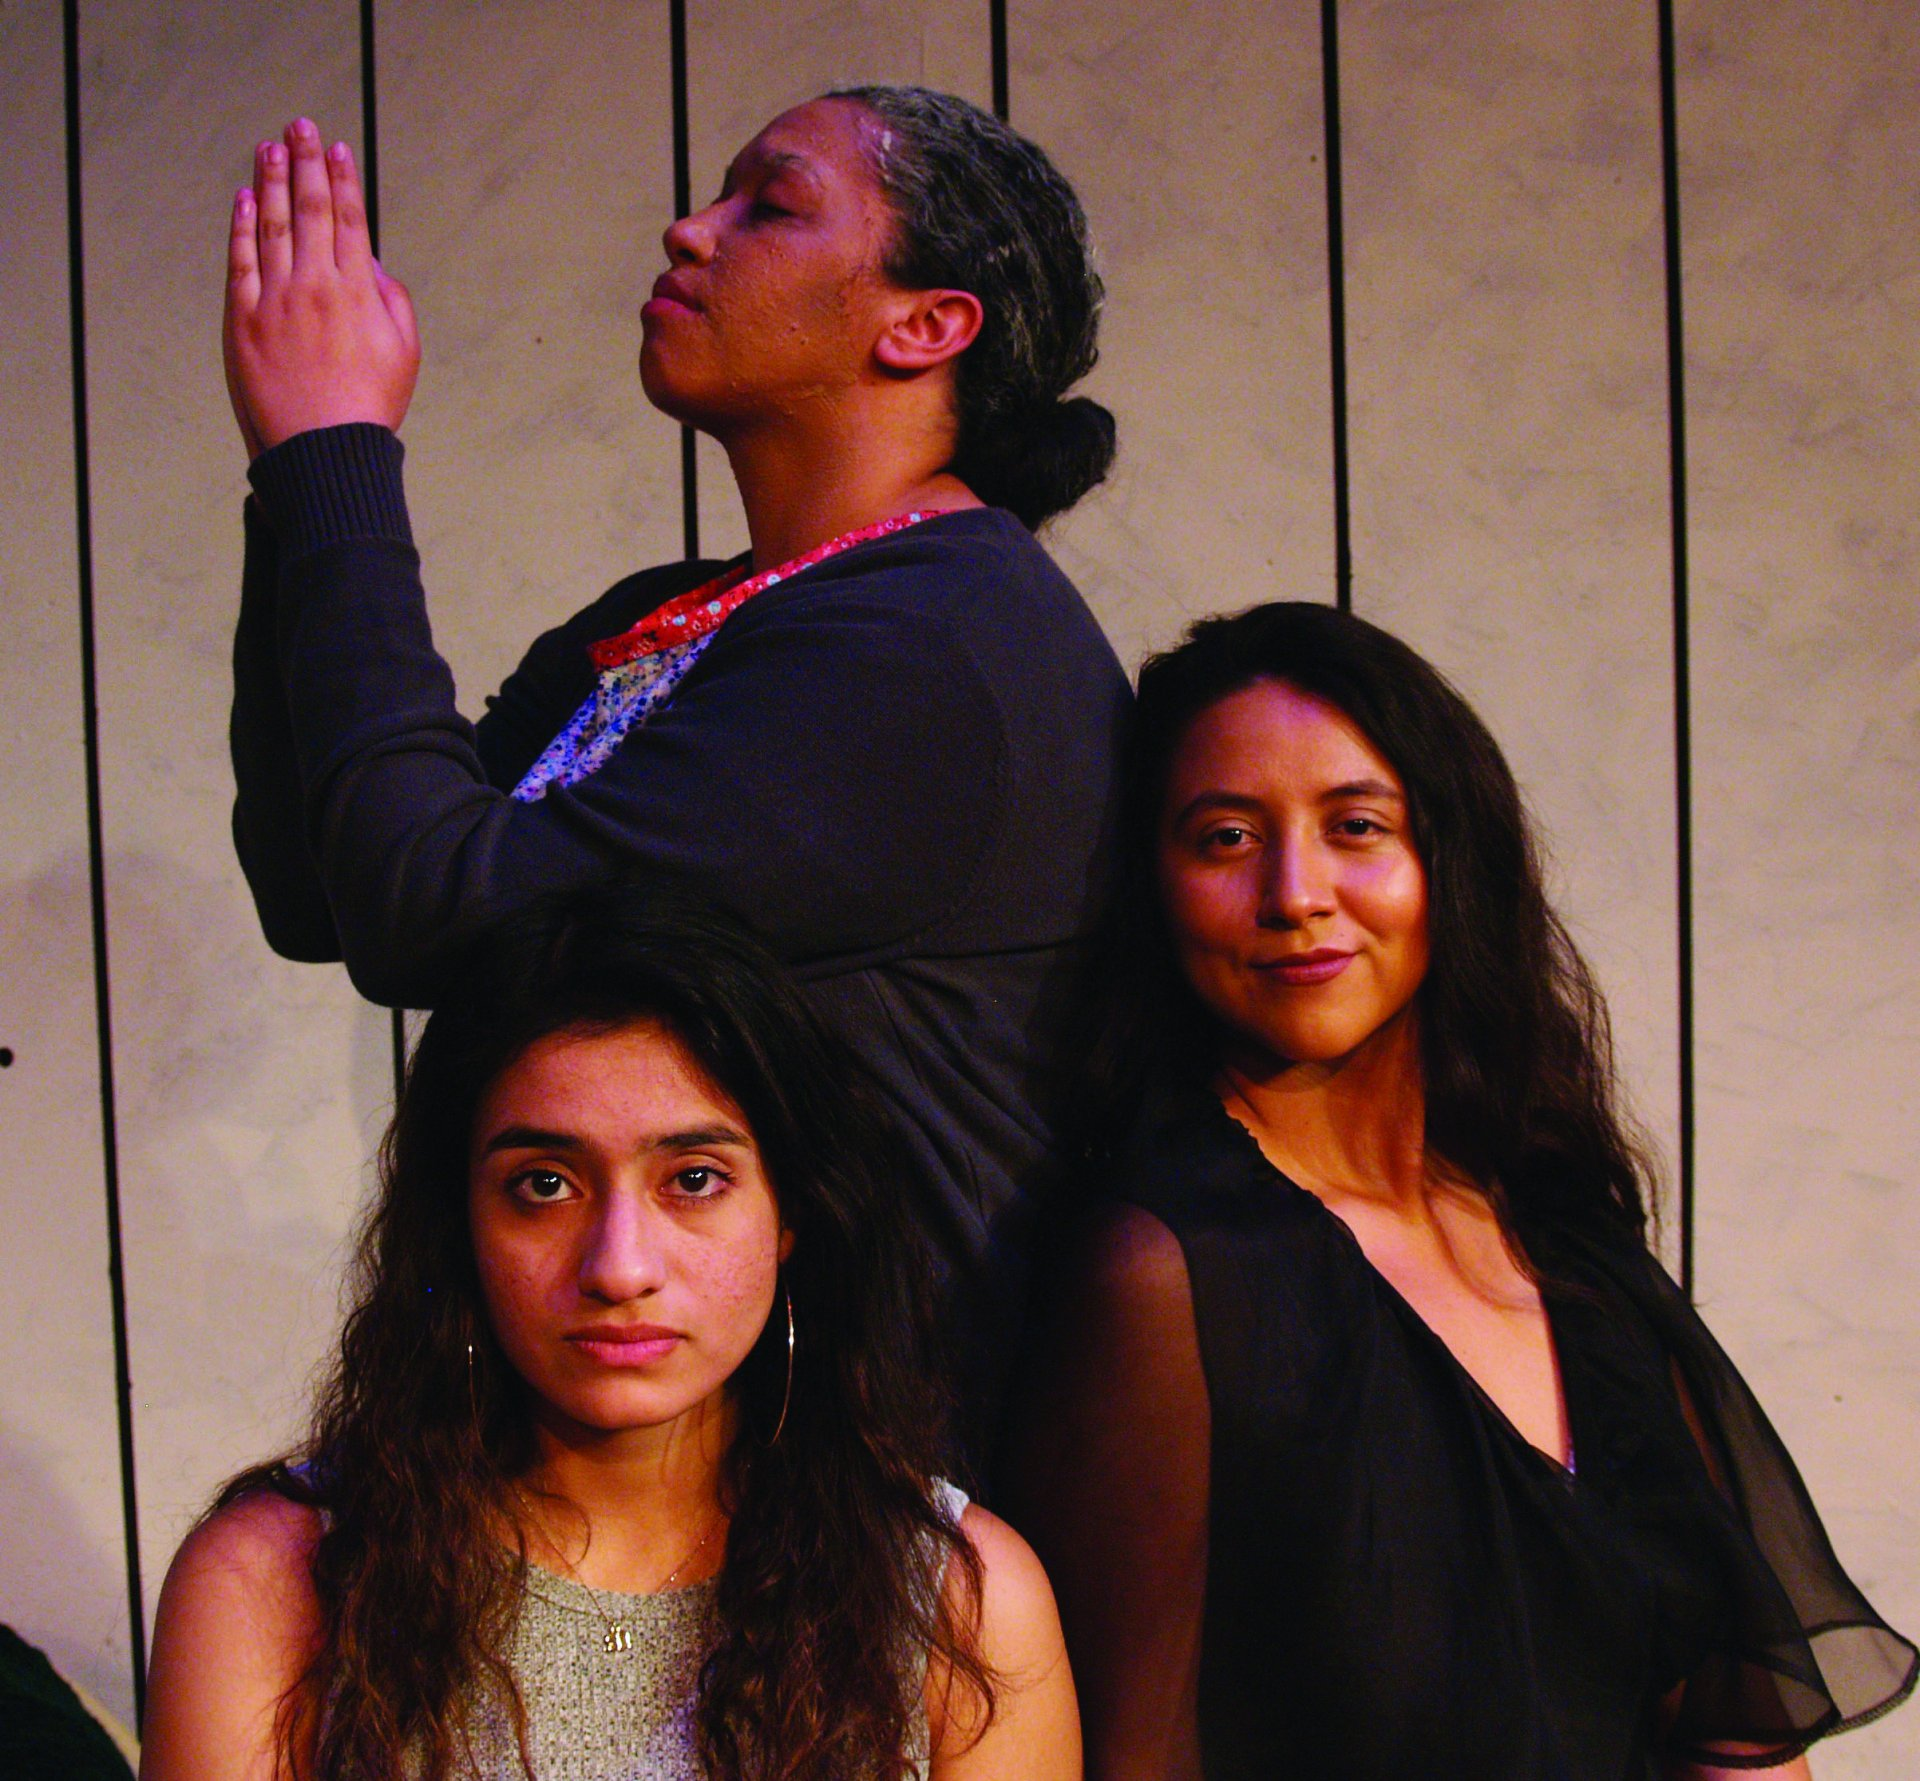 Left to right: Irma Gill as Vanessa, Savannah Baez as Belen, Andrea Carillo as Adoracion. | Photo courtesy of the Theatre Film and Dance Department